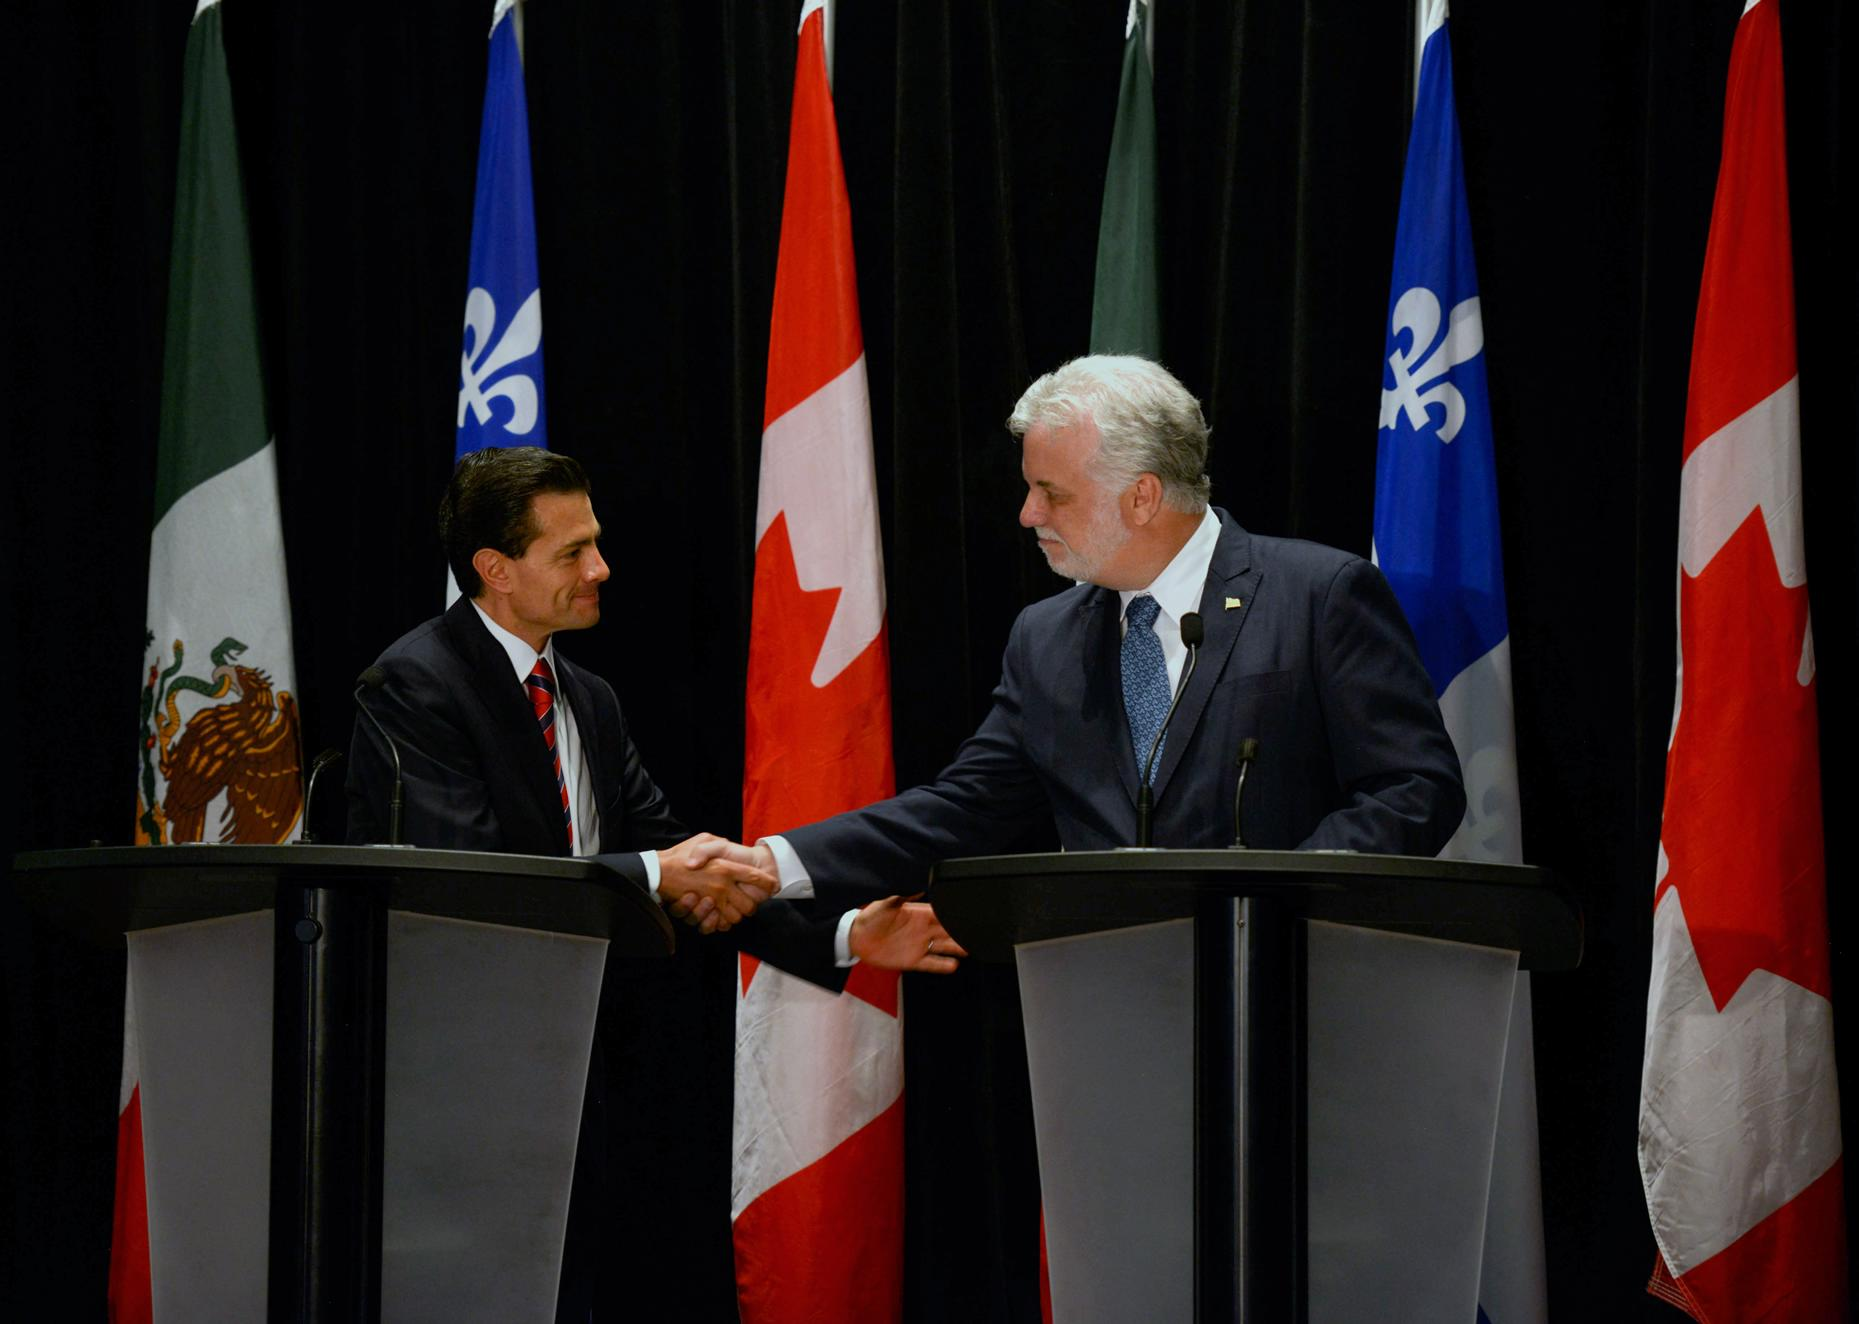 Five cooperation agreements were signed in priority areas such as increasing university student and research exchanges with Quebec.